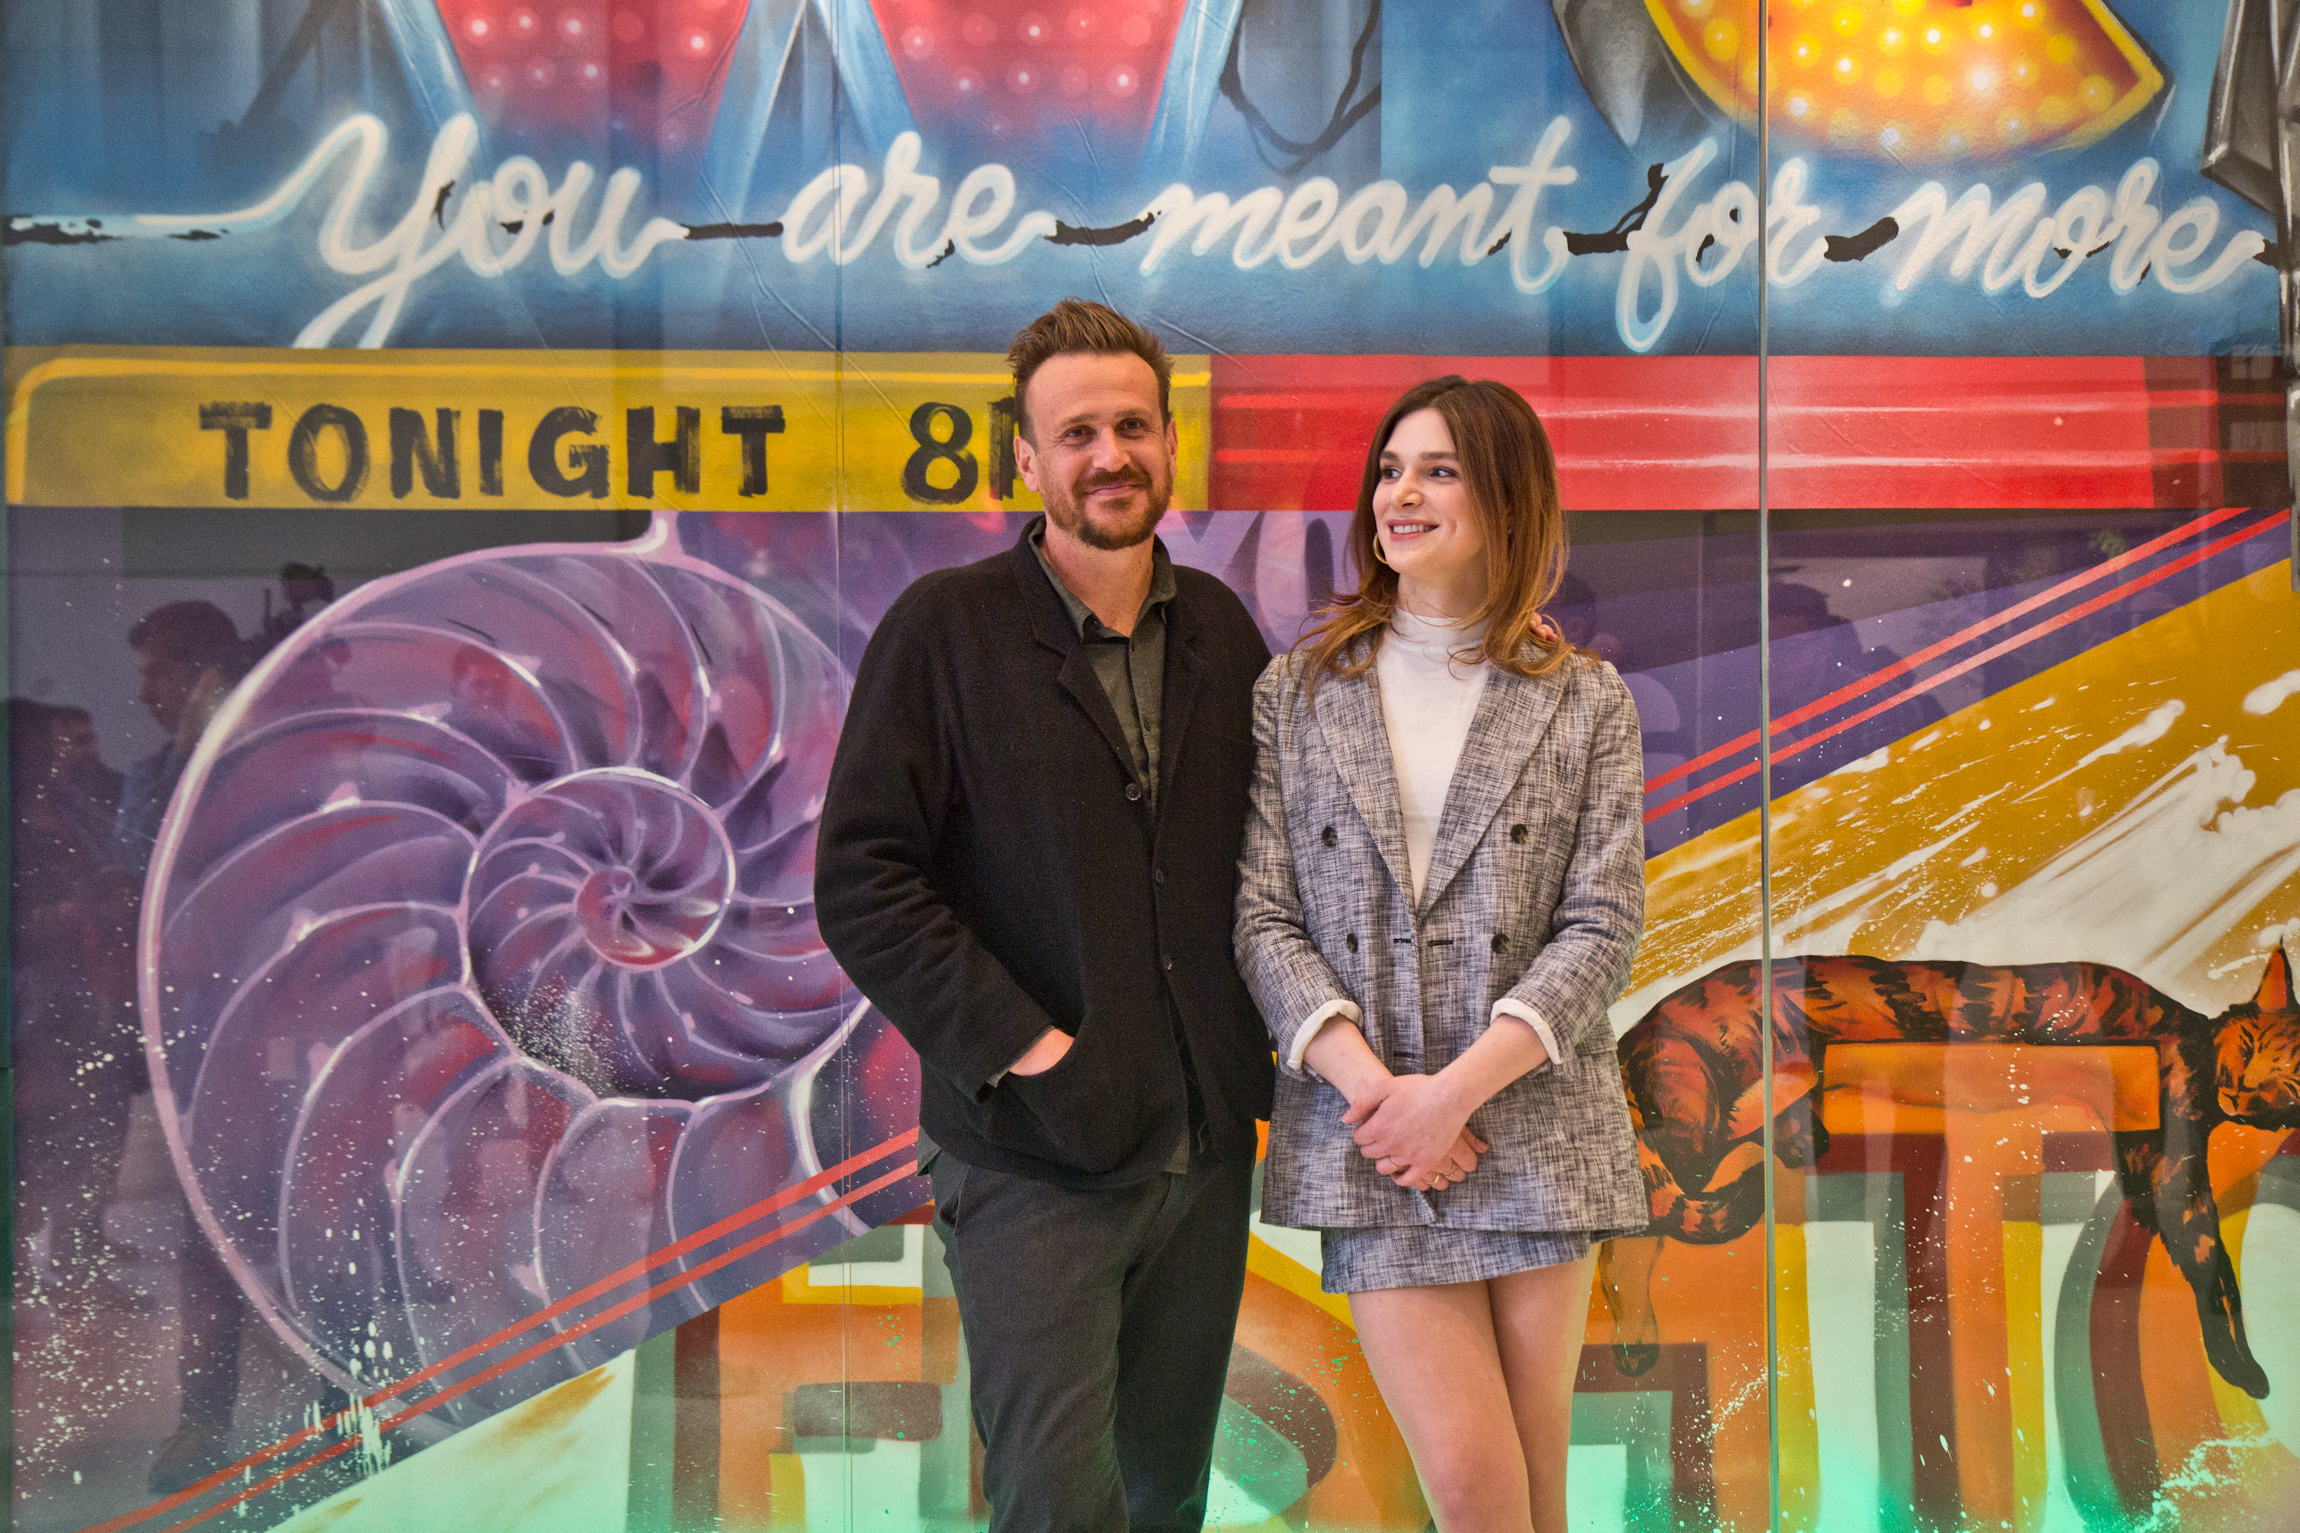 All the city's a stage: Jason Segel's new TV show gifts Philly a mural of itself